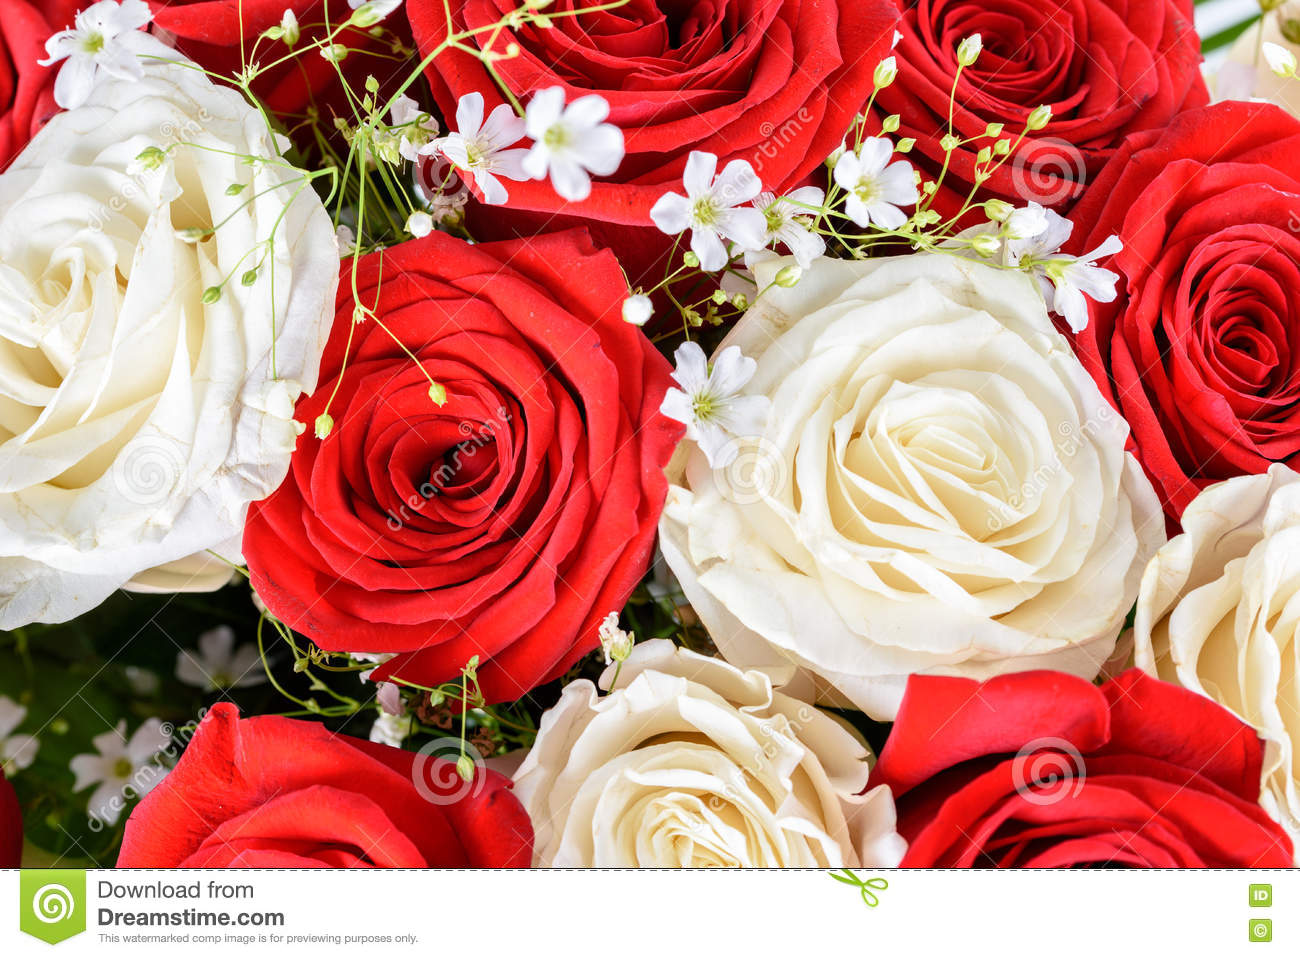 Red And White Roses Wedding Bouquet Stock Image Image Of Romance